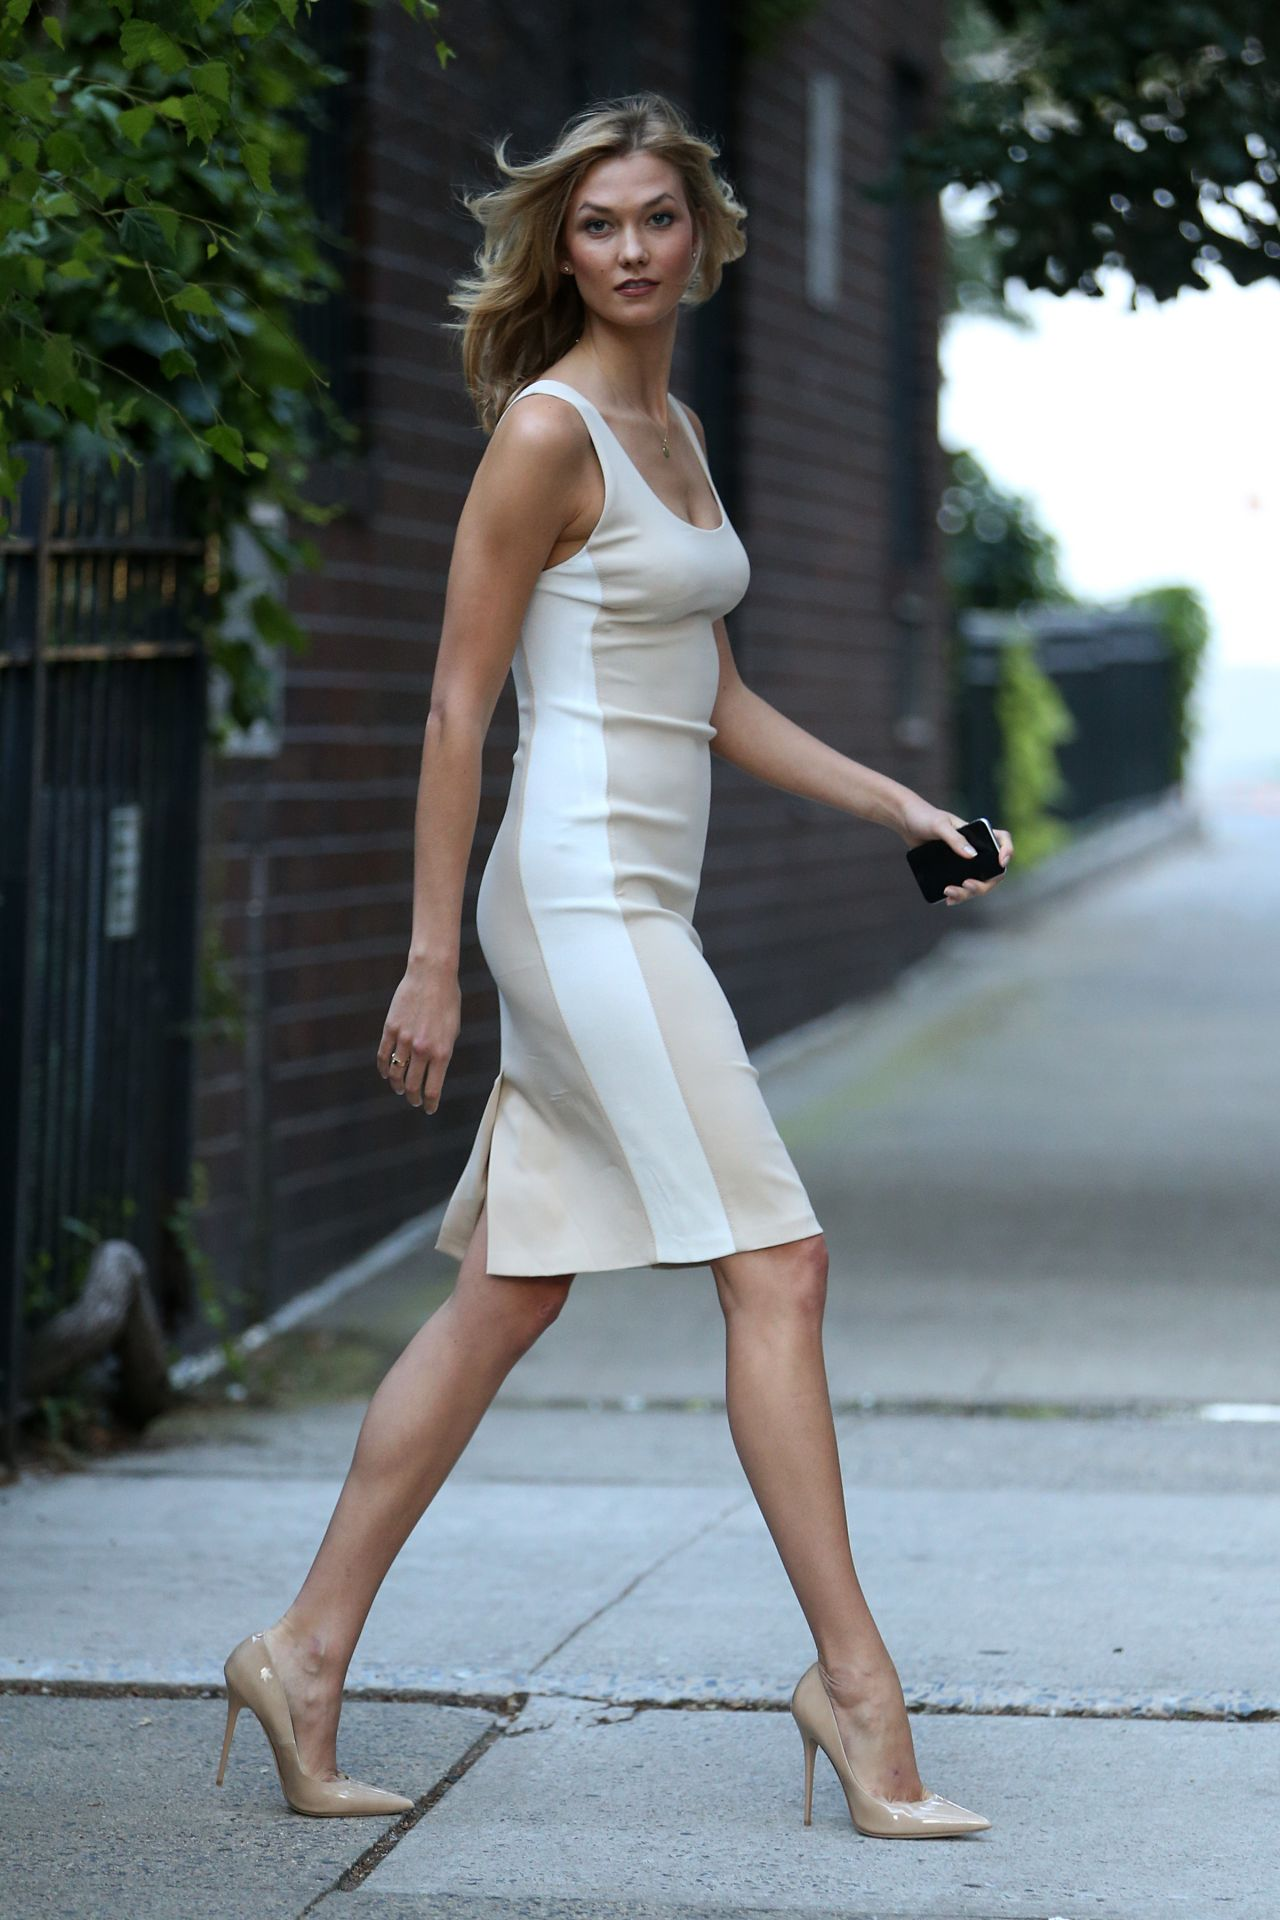 Karlie Kloss Style - Stepping Out I Nyc, juli 2015-1577